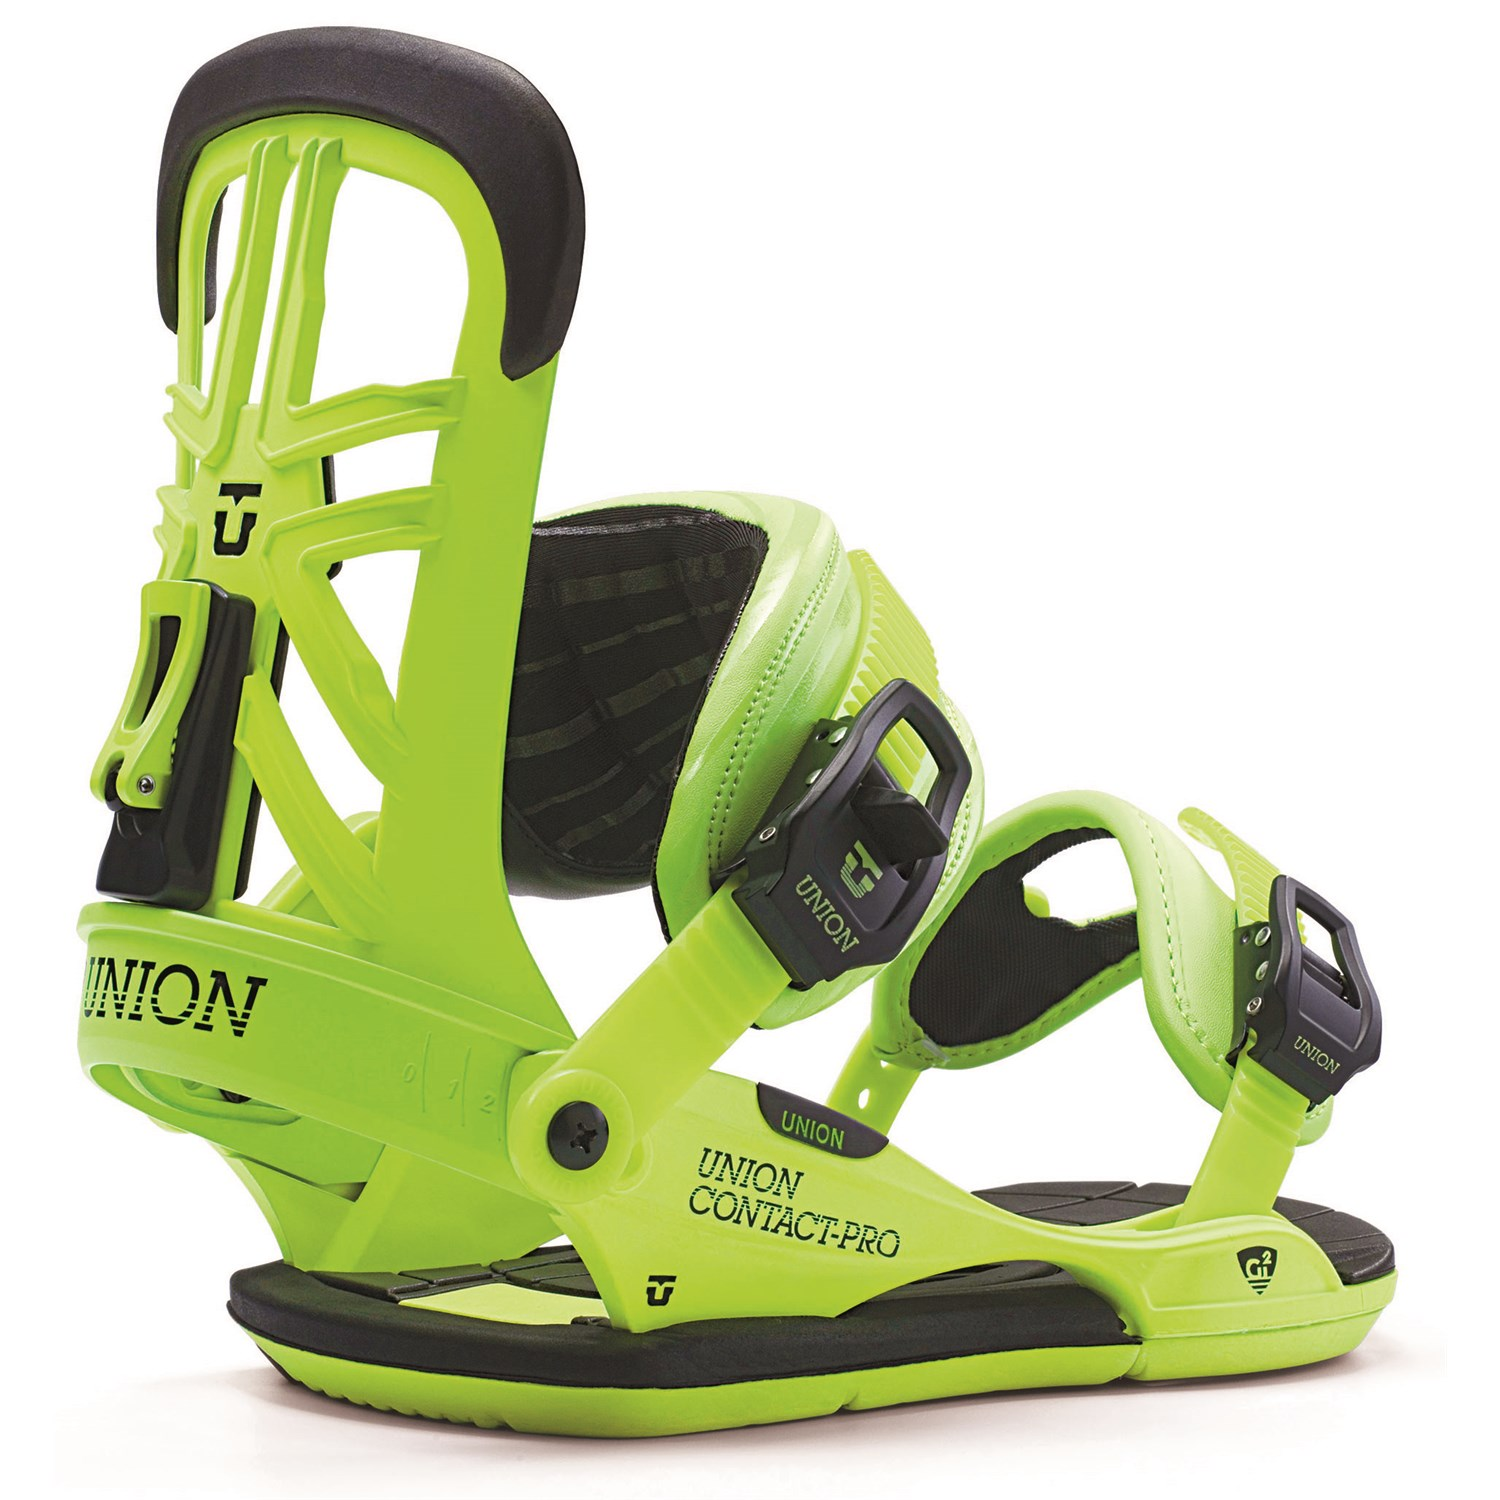 9a5ee593024 Union Contact Pro Snowboard Bindings 2014